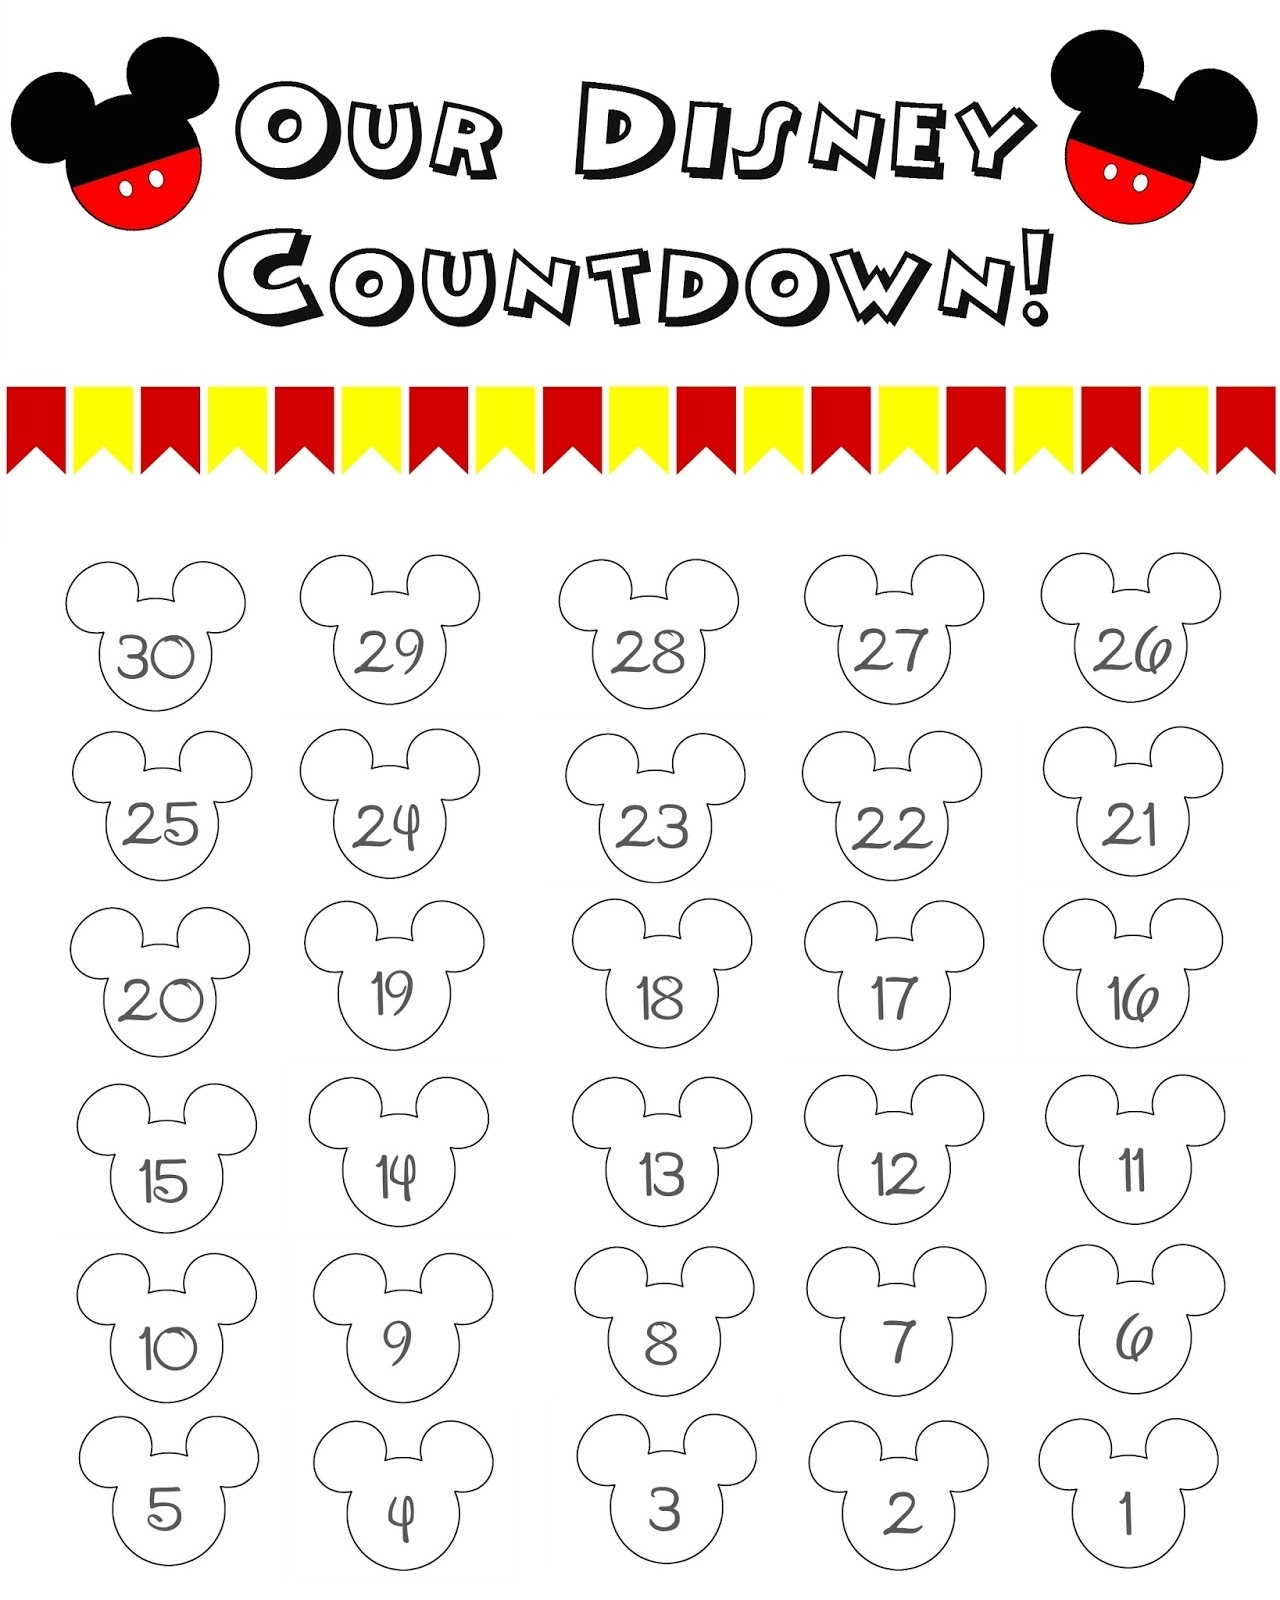 10 Fun Printable Disney Countdown Calendars | Kittybabylove regarding 99 Days To Disney Printable Calendar